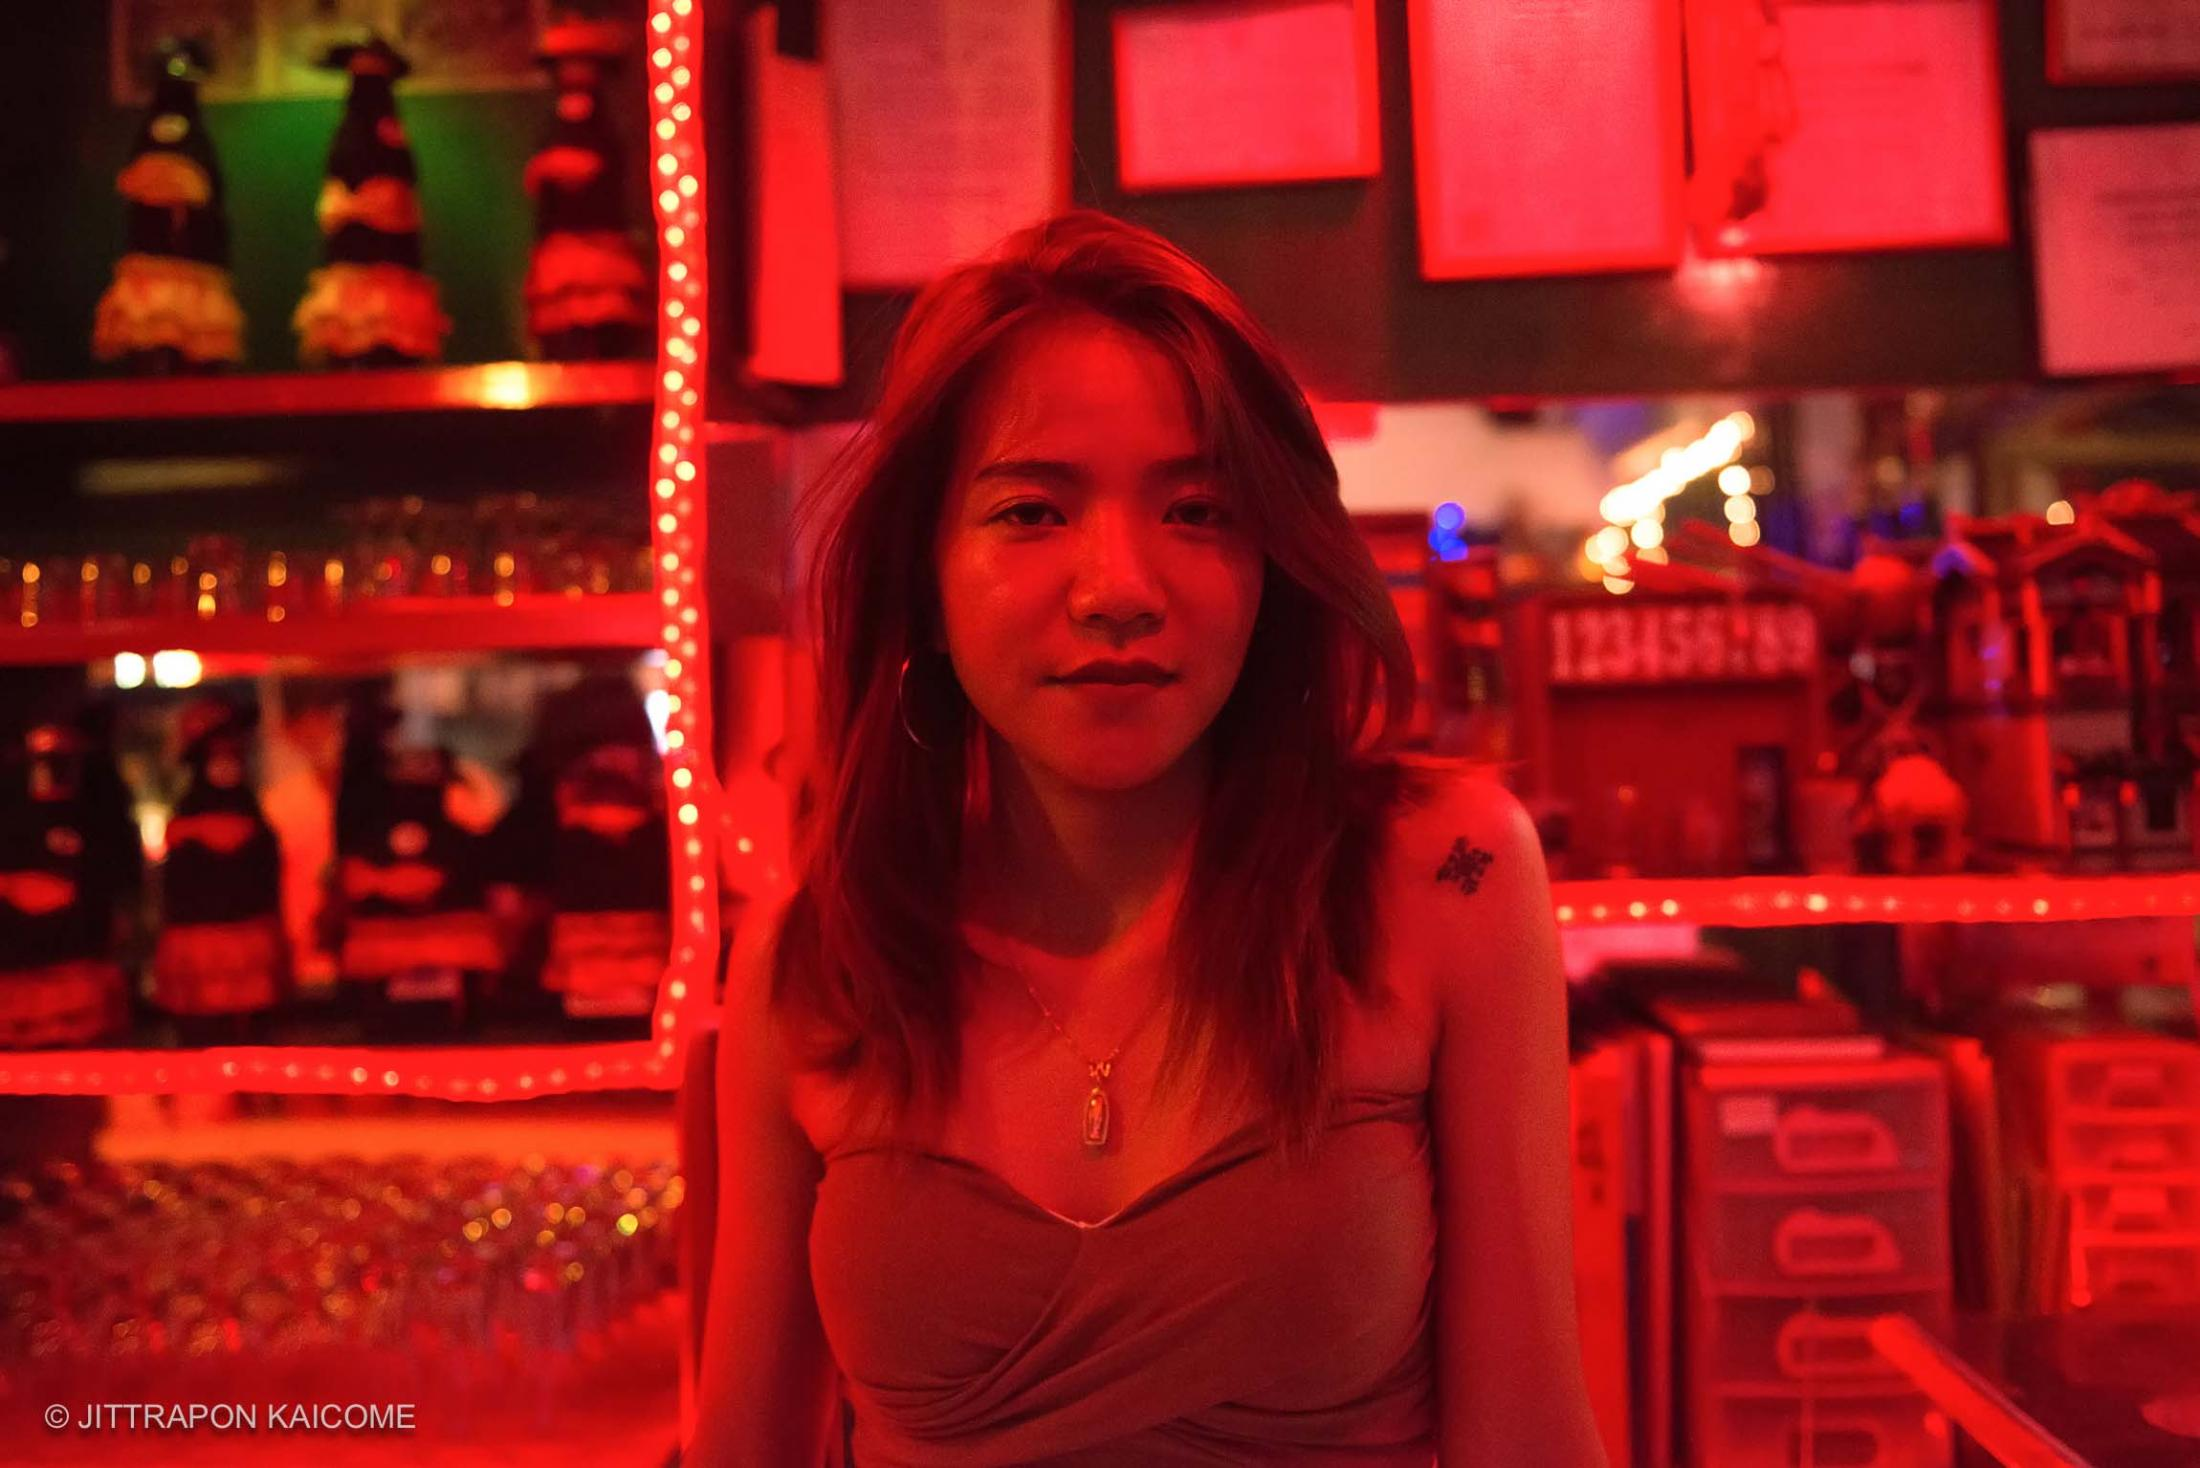 Mori, a sex worker who works at the Karaoke bar taking care of VIP customers. Working as at Can Do Bar as staff for Empower on Job training such as bartender, sewing and massaging.